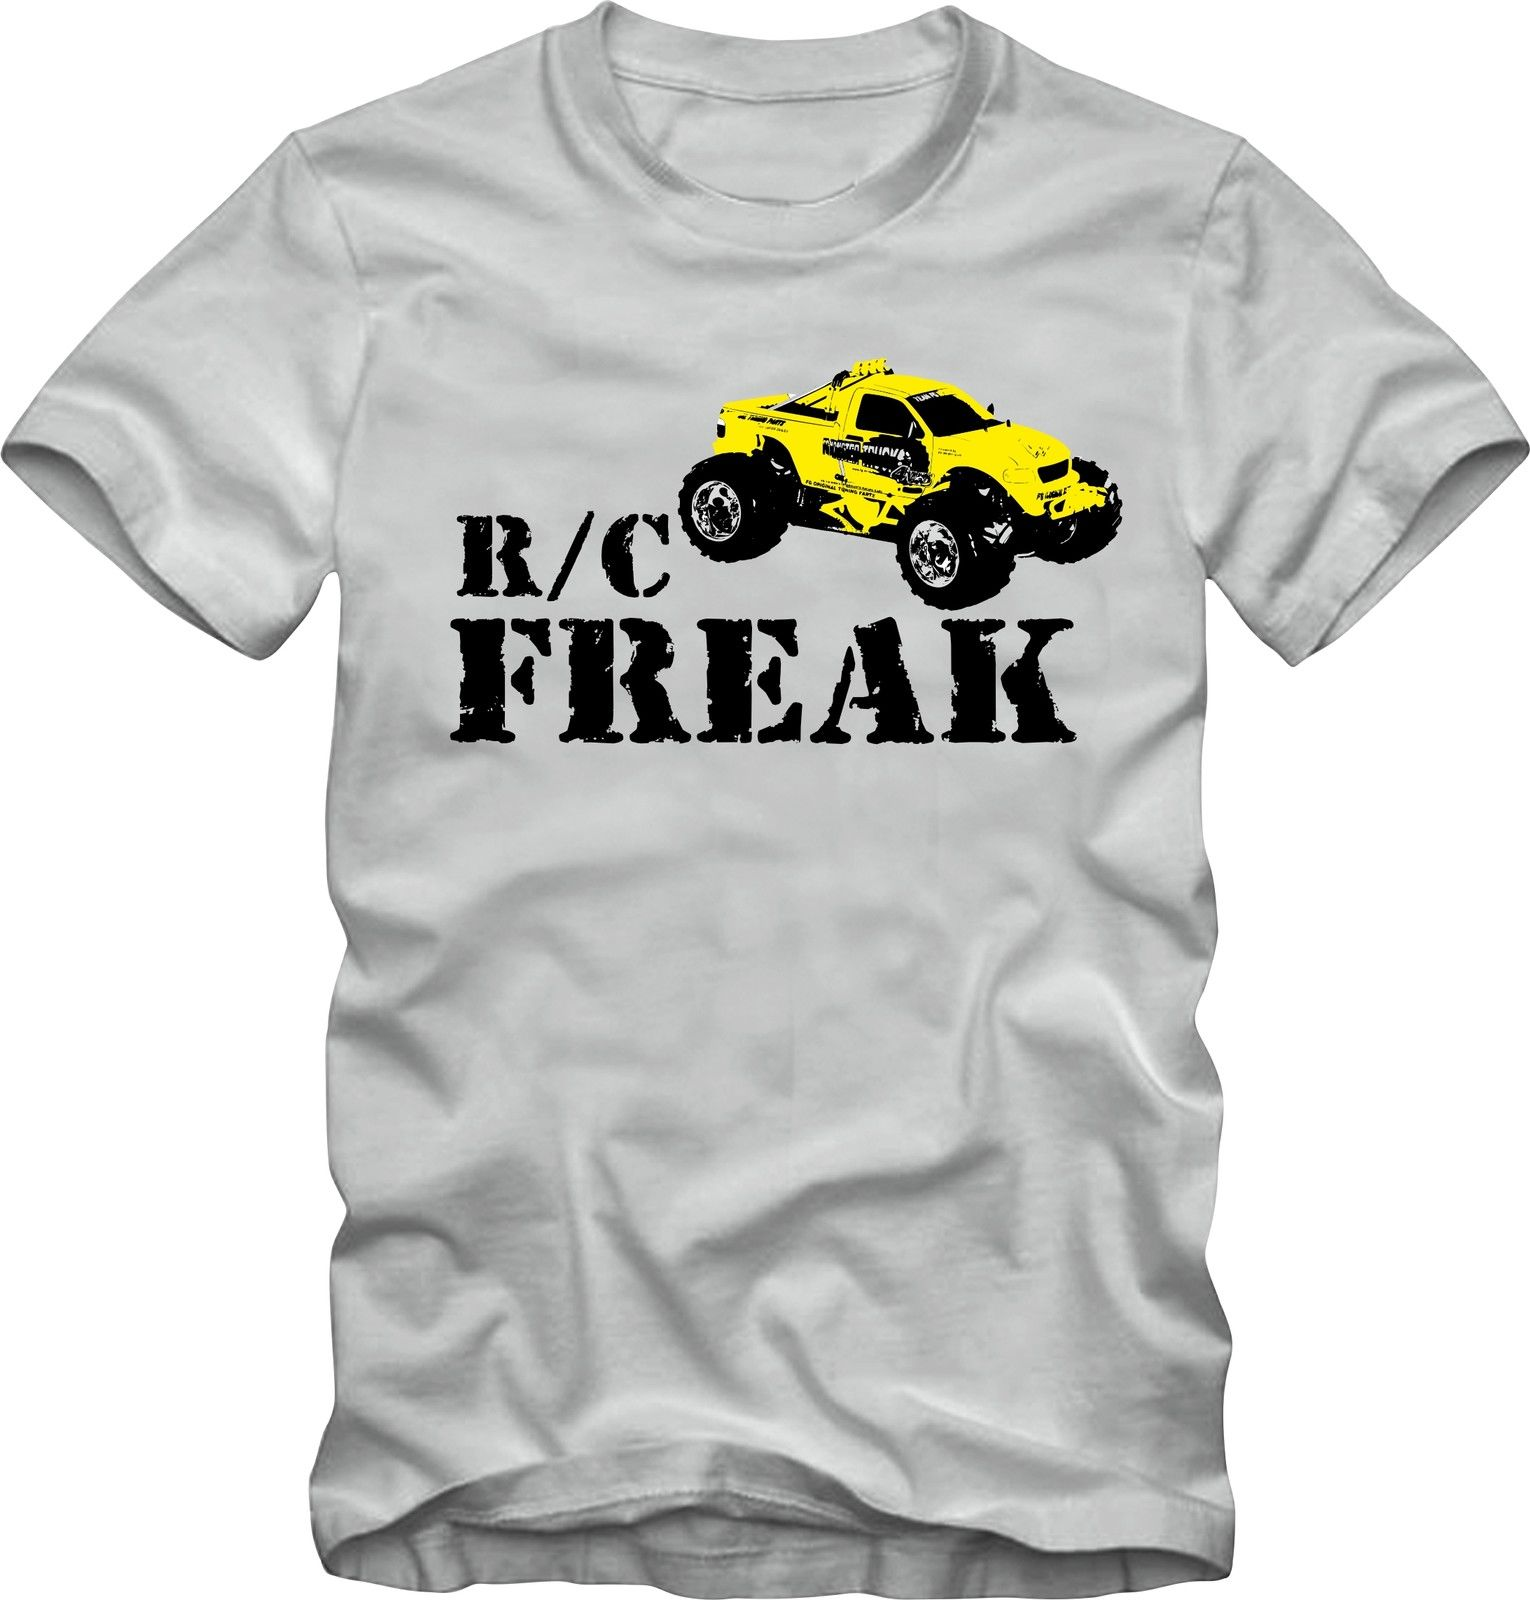 2018 Hot sale FG Truck T-Shirt R/C Freak Fan Shirt Carson ...